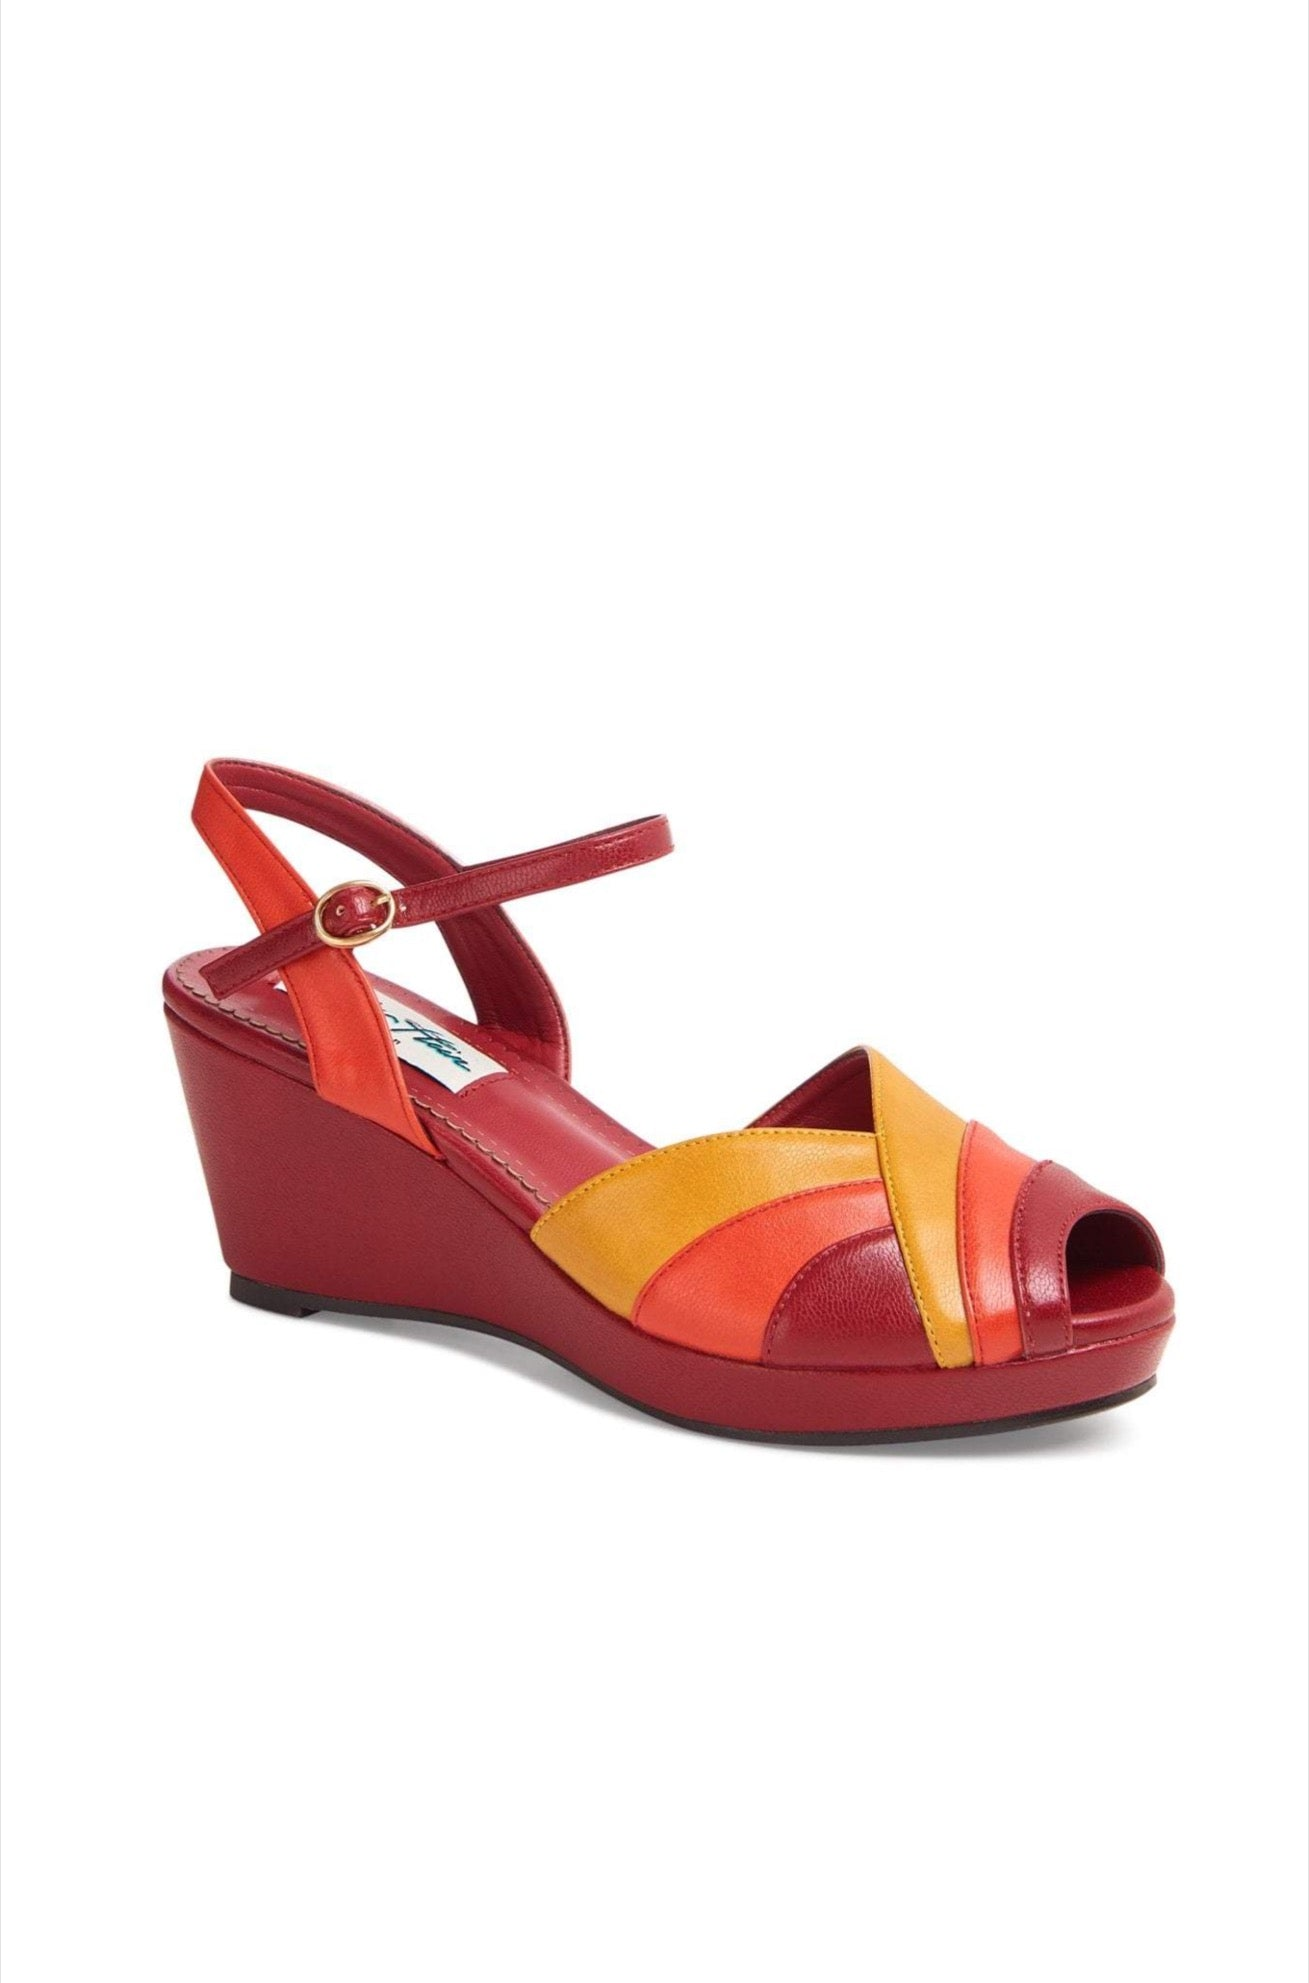 Tonya Wedge Sandal in Orange & Red by Lulu Hun